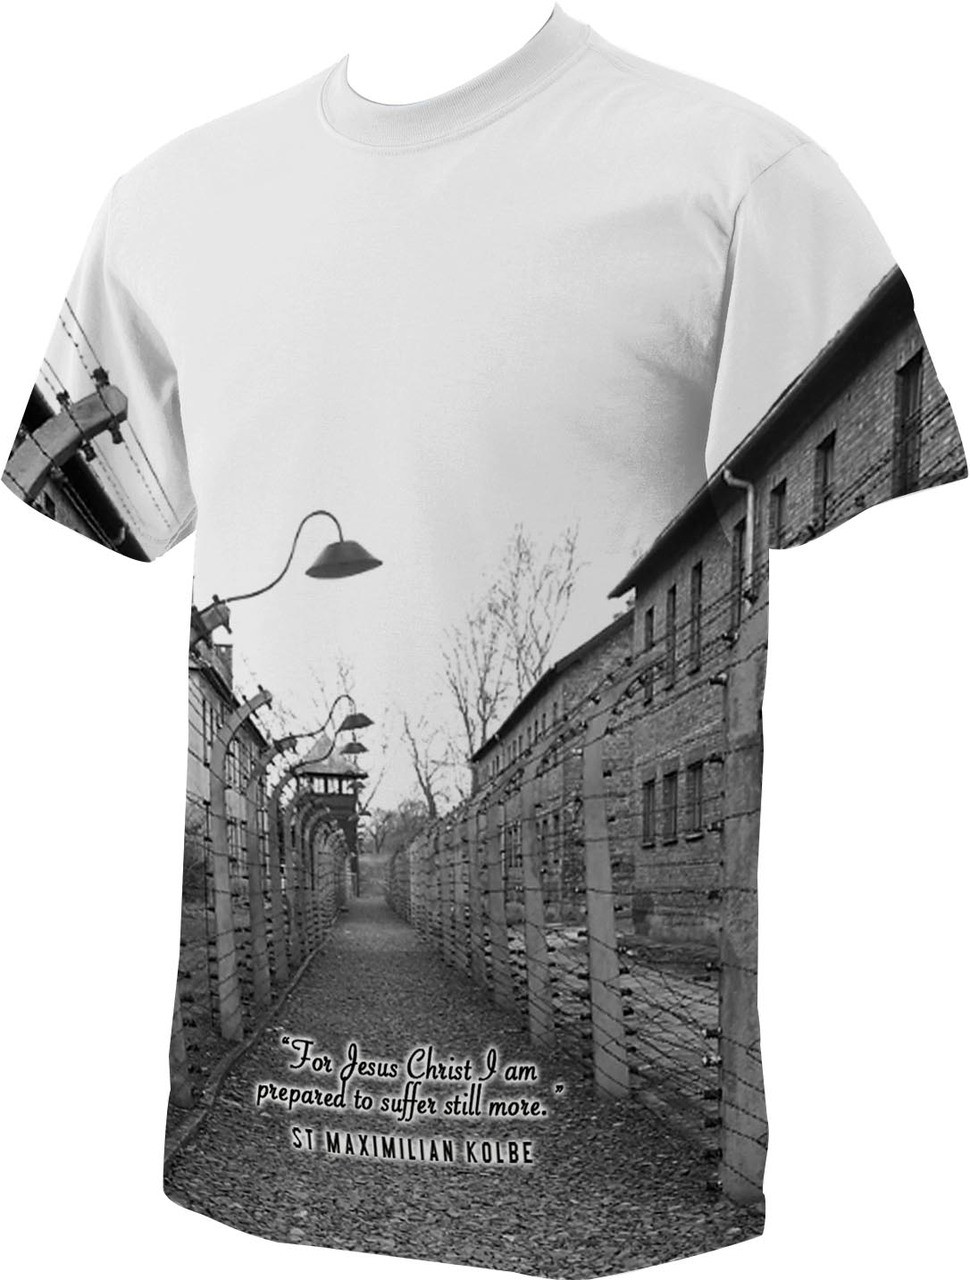 St. Maximilian Kolbe Auschwitz T-Shirt - Catholic to the Max ...